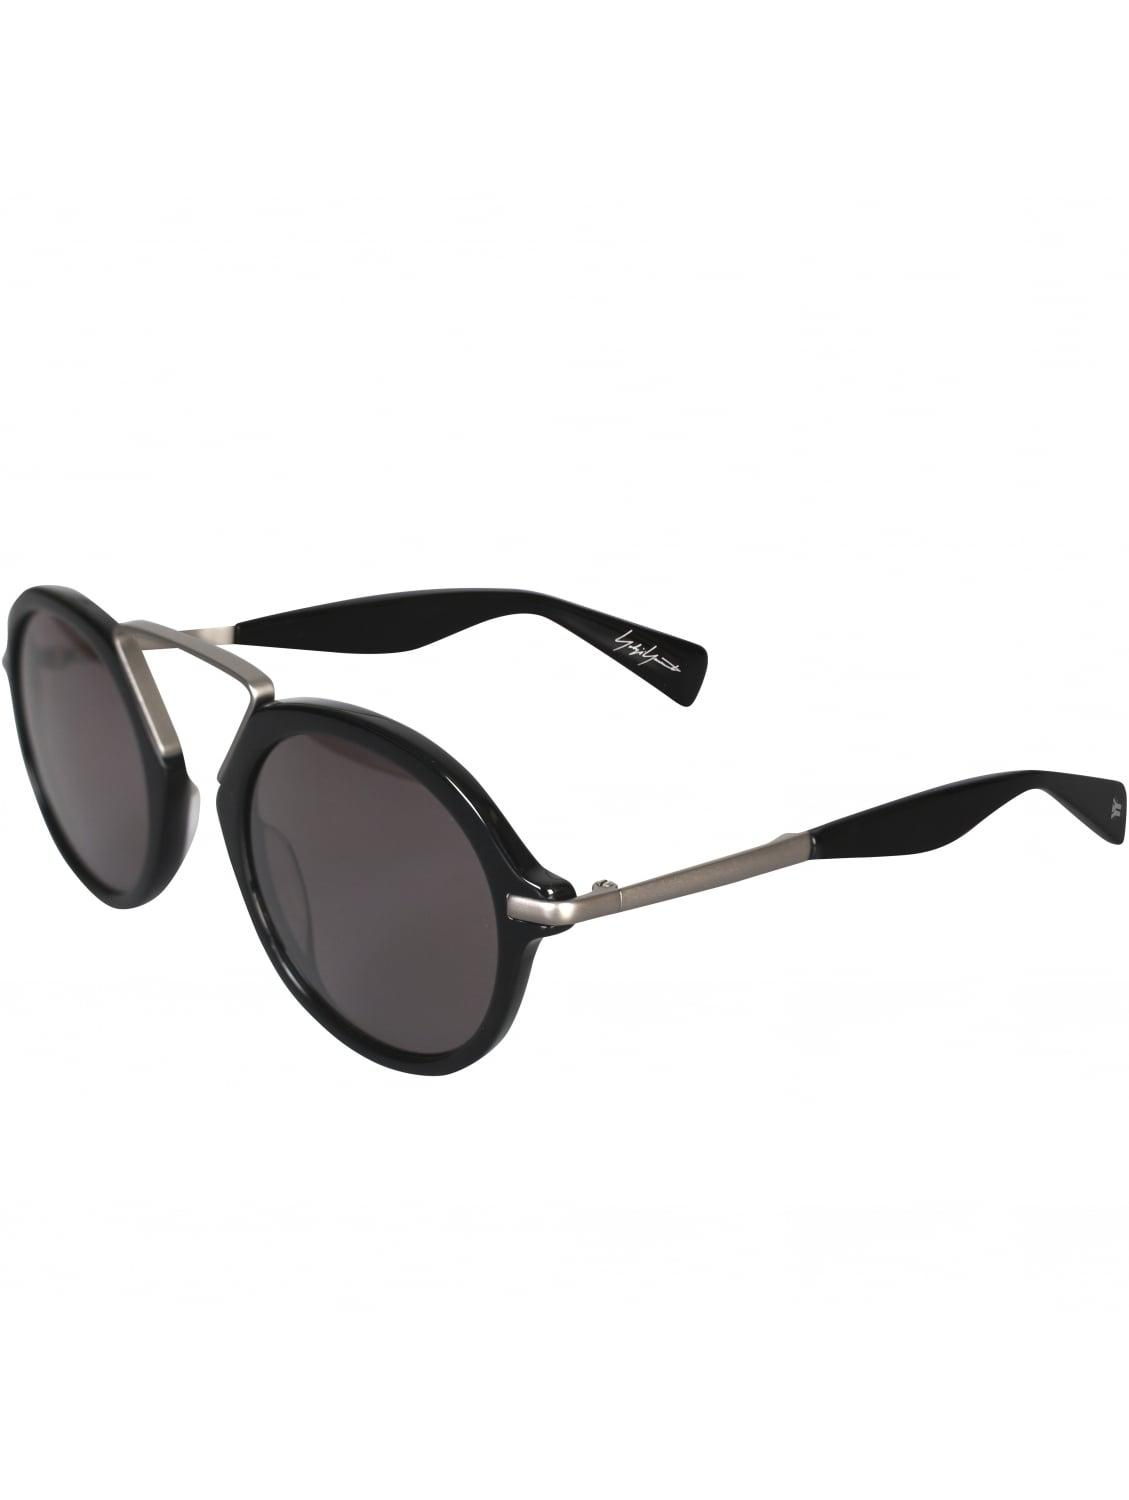 Yohji Yamamoto Leather Squared Frame Sunglasses With Lids Black/grey for Men